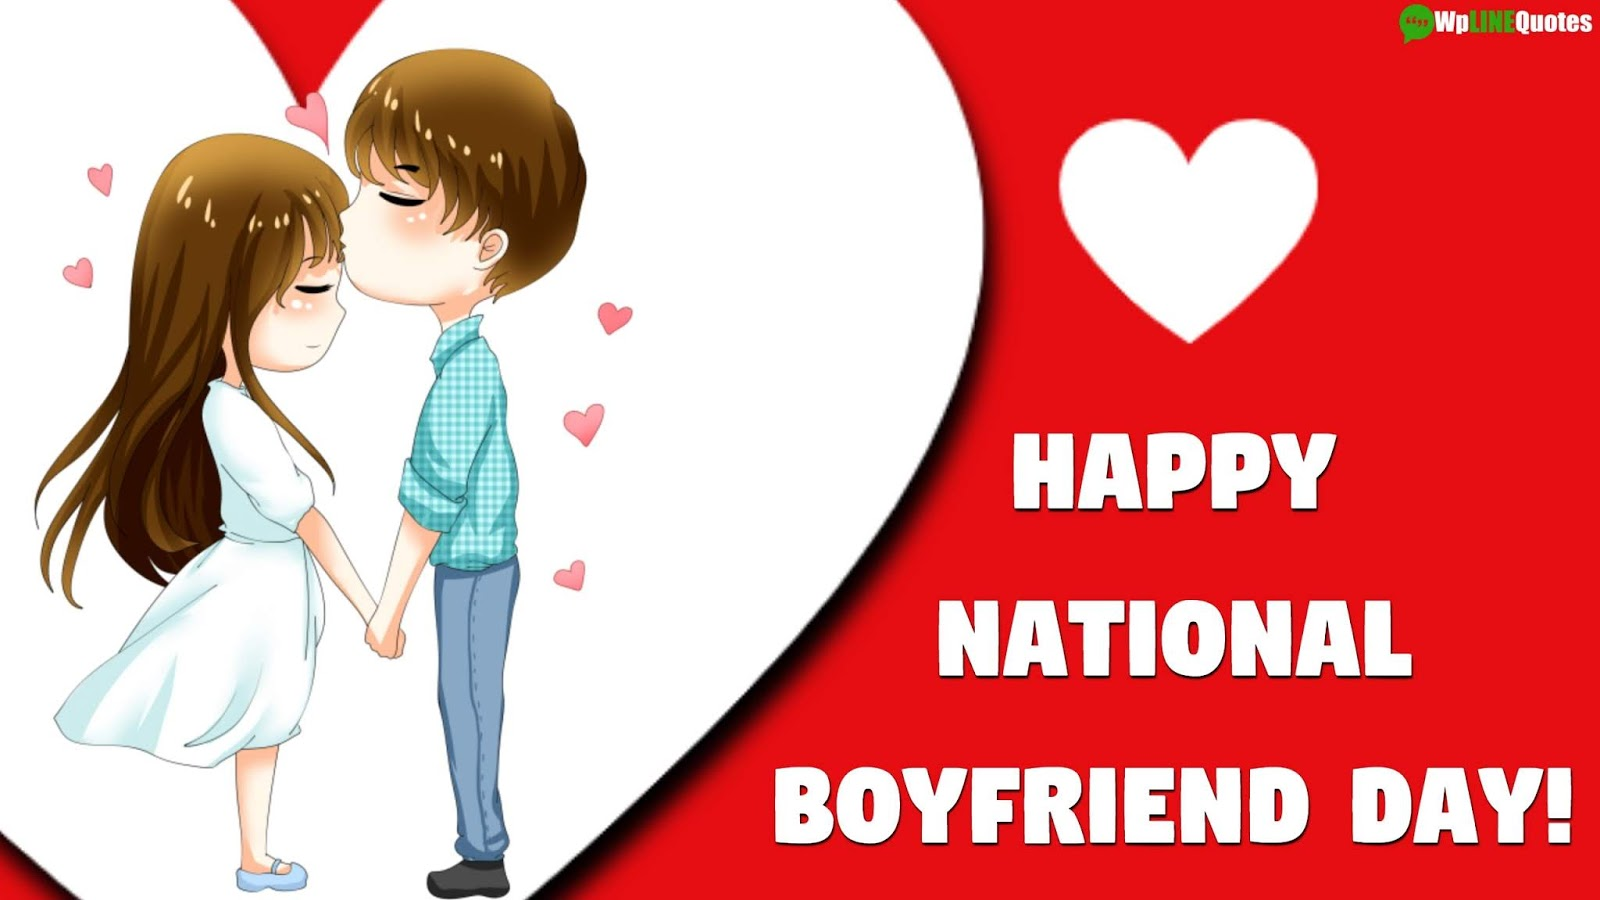 (Best) Happy National Boyfriend Day 2019 Quotes, Wishes, Images, Messages For Whatsapp & Facebook